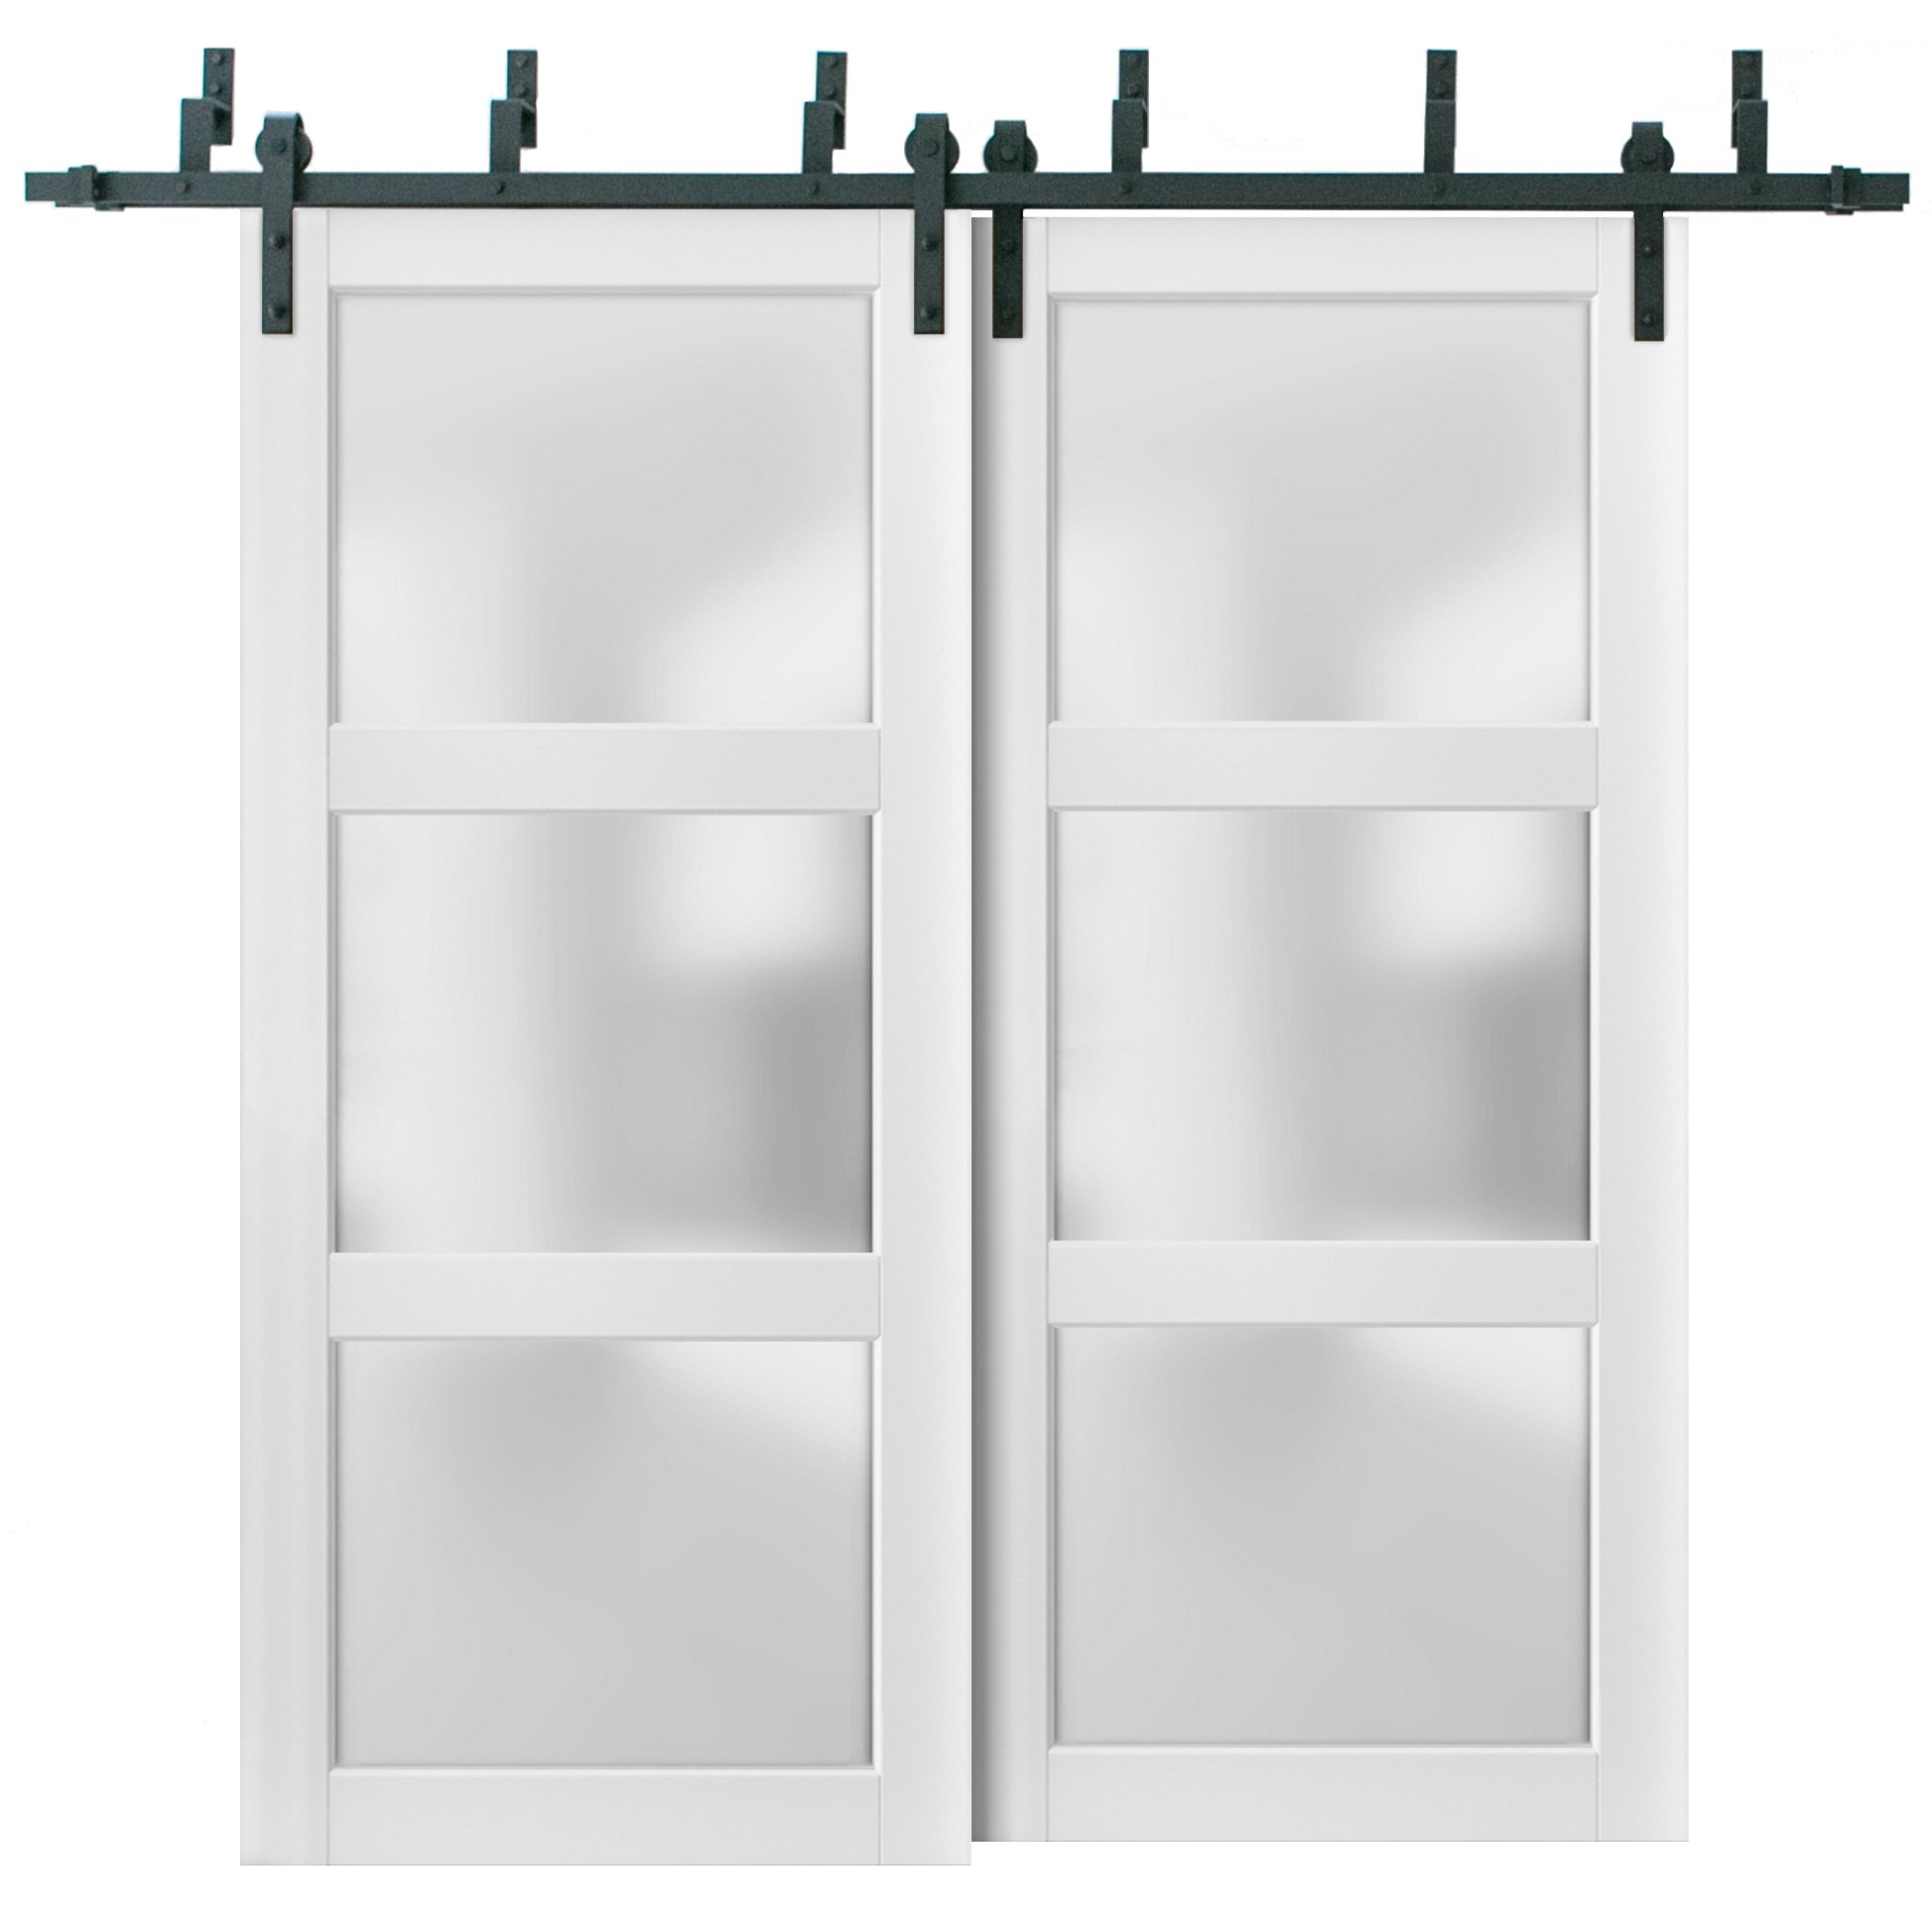 Picture of: Sliding Closet Frosted Glass 3 Lites Barn Bypass Doors 48 X 80 Inches Lucia 2552 Matte White Sturdy Top Mount 6 6ft Rails Hardware Set Wood Solid Bedroom Wardrobe Doors Walmart Com Walmart Com